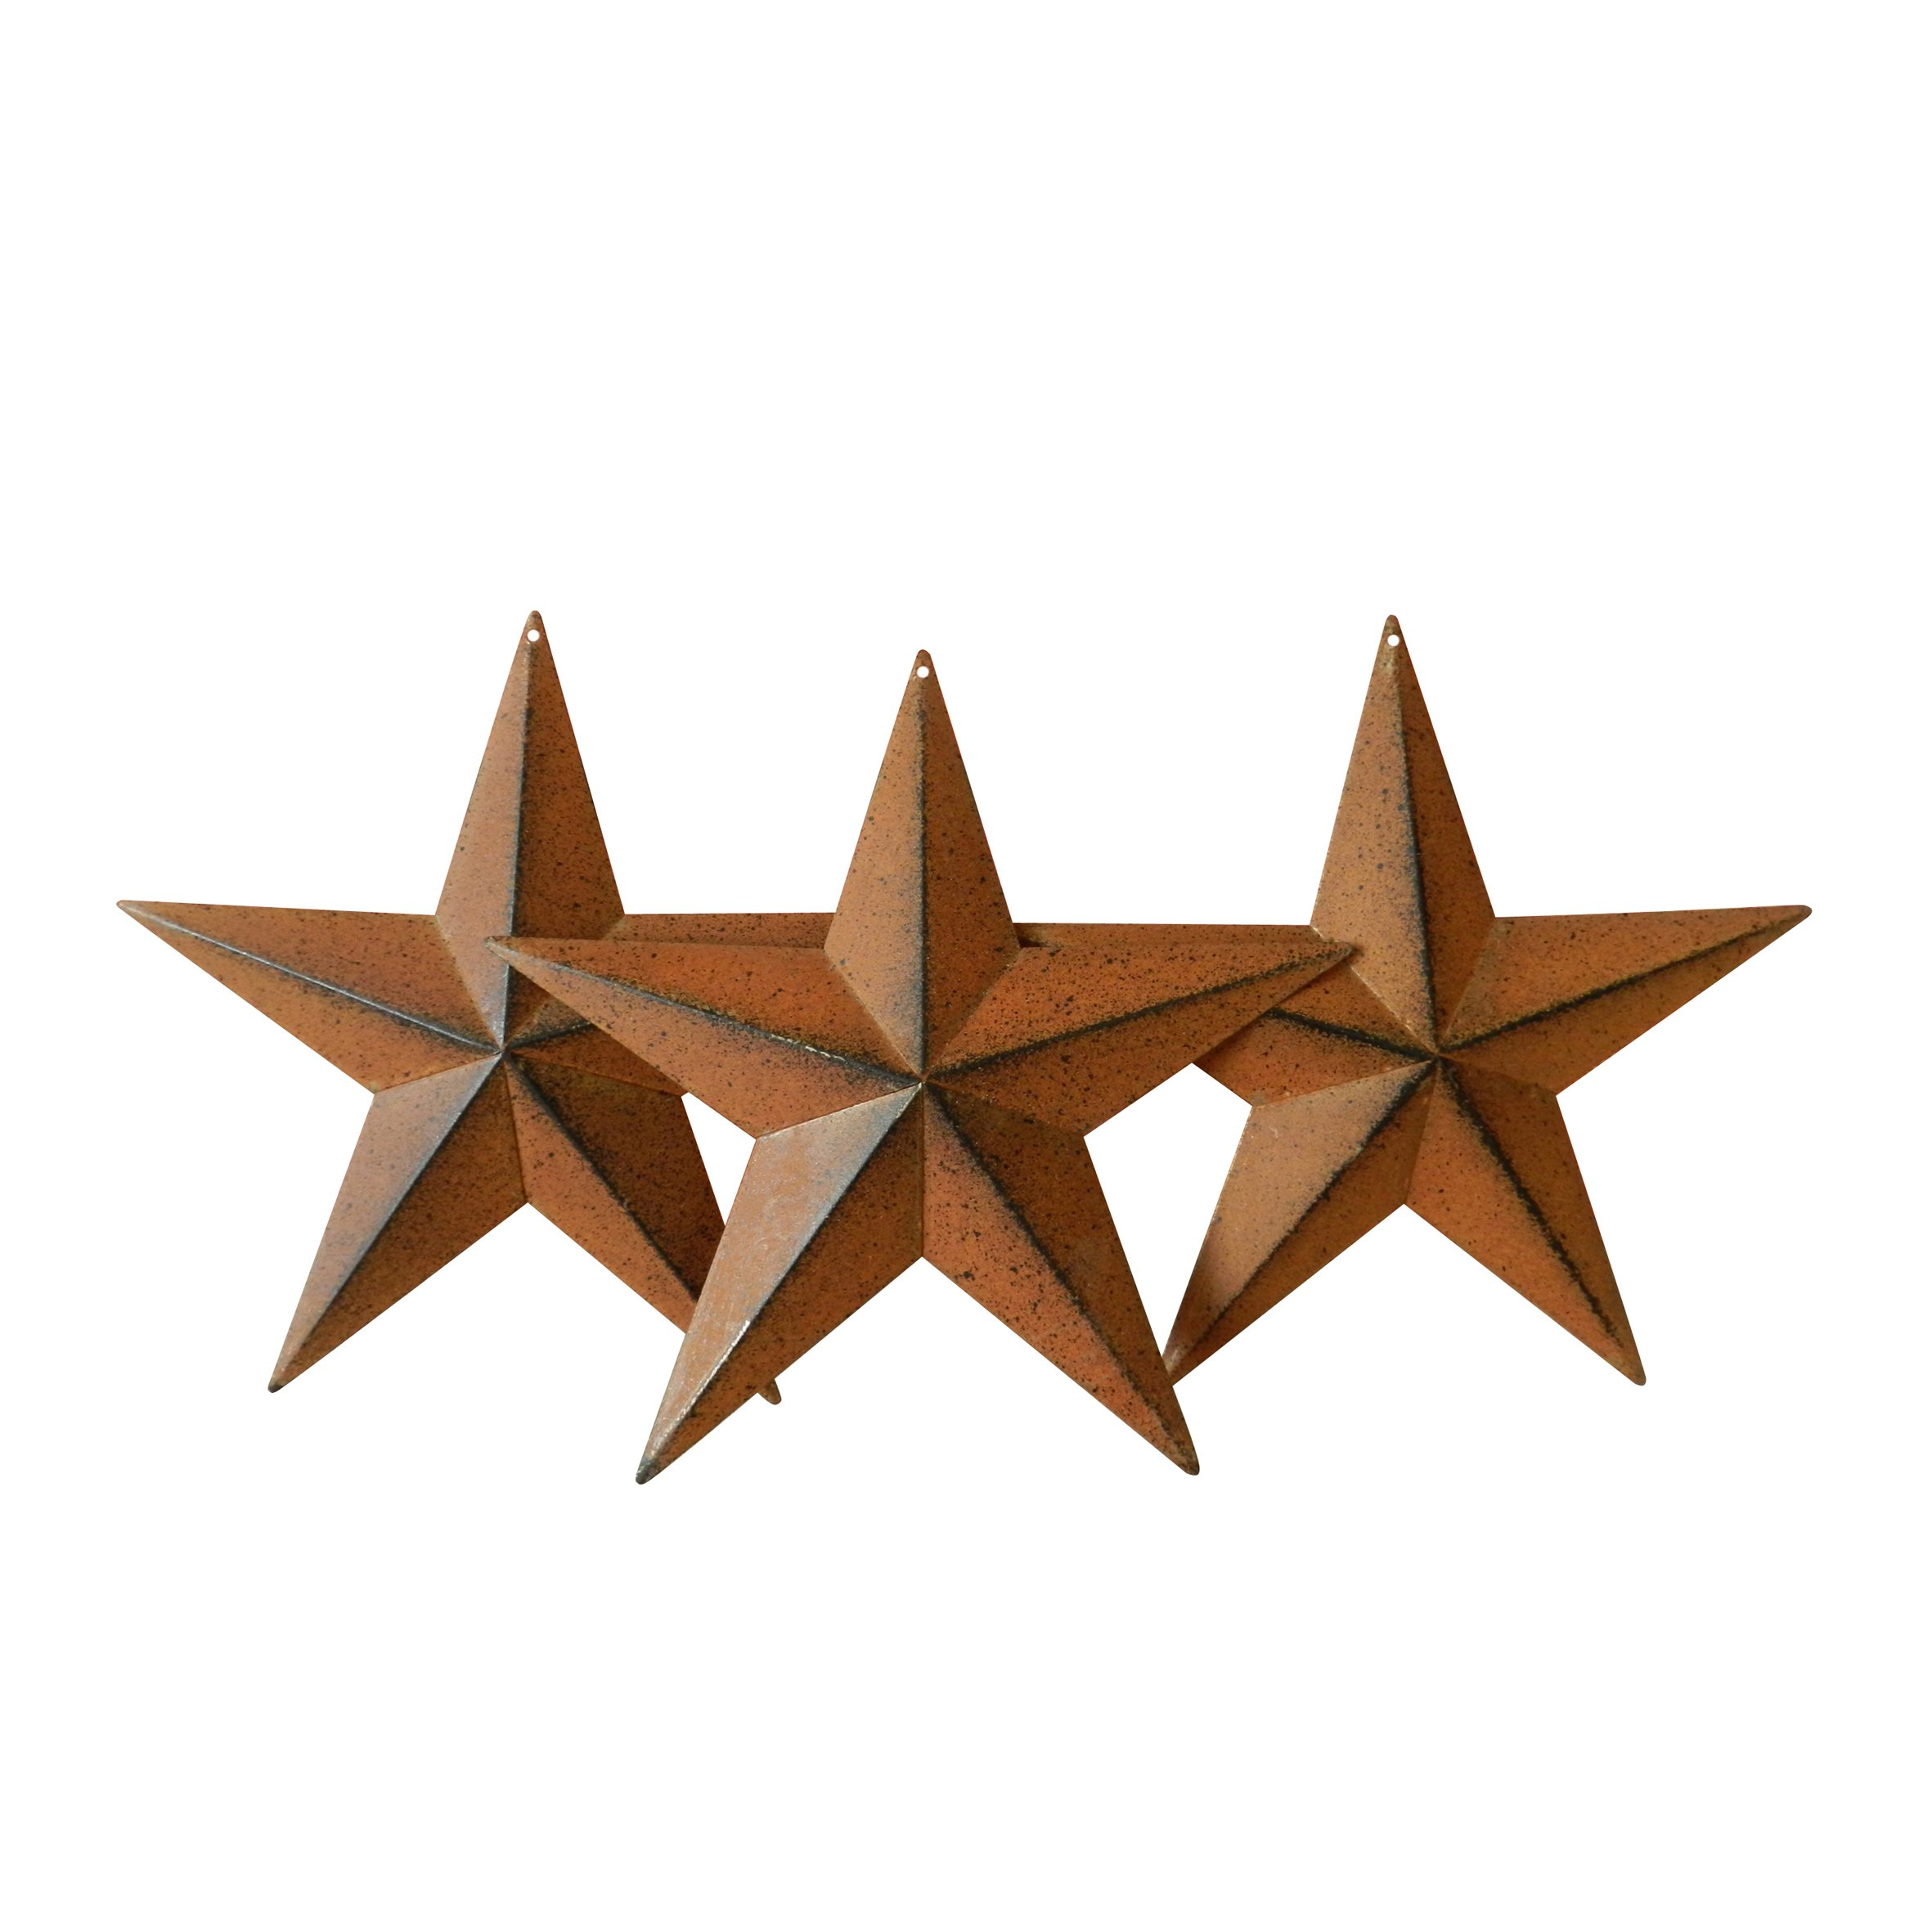 CVHOMEDECO. Country Rustic Antique Vintage Gifts Metal Barn Star Wall/Door Decor, 8-Inch, Set of 3. (Rusty)